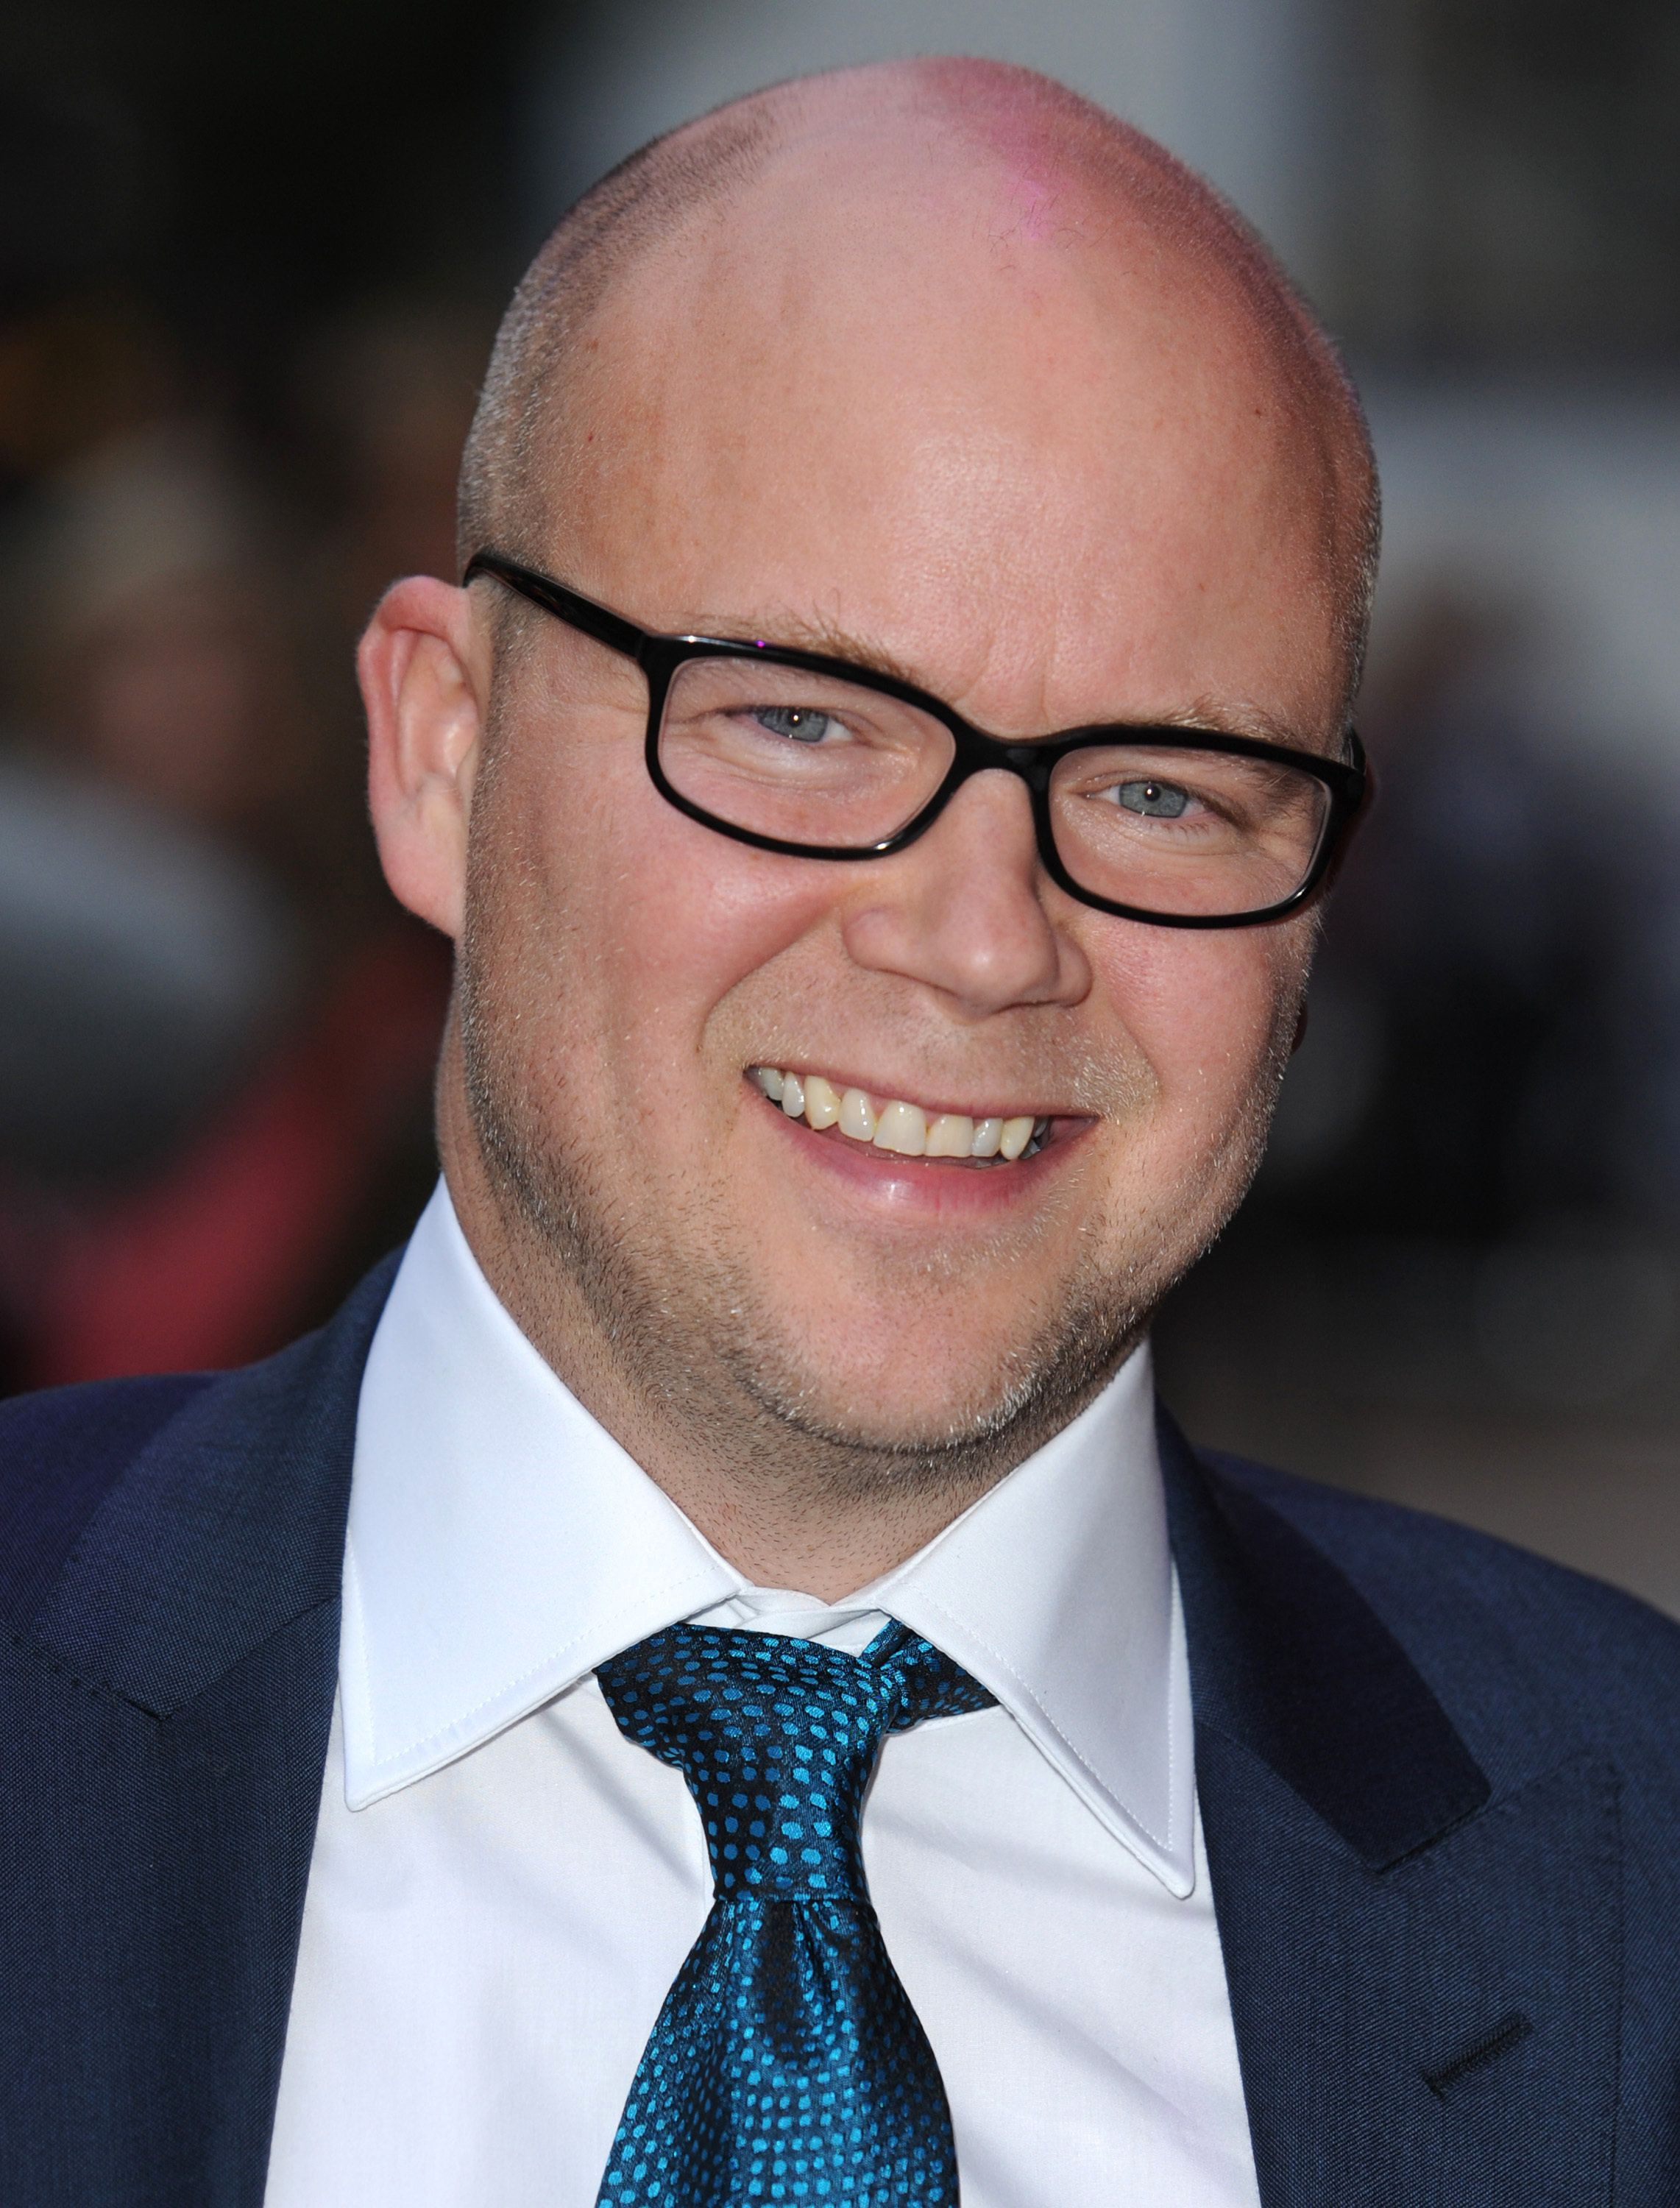 Toby Young resigned from the OfS board, saying the controversy around him had become a 'distriction'